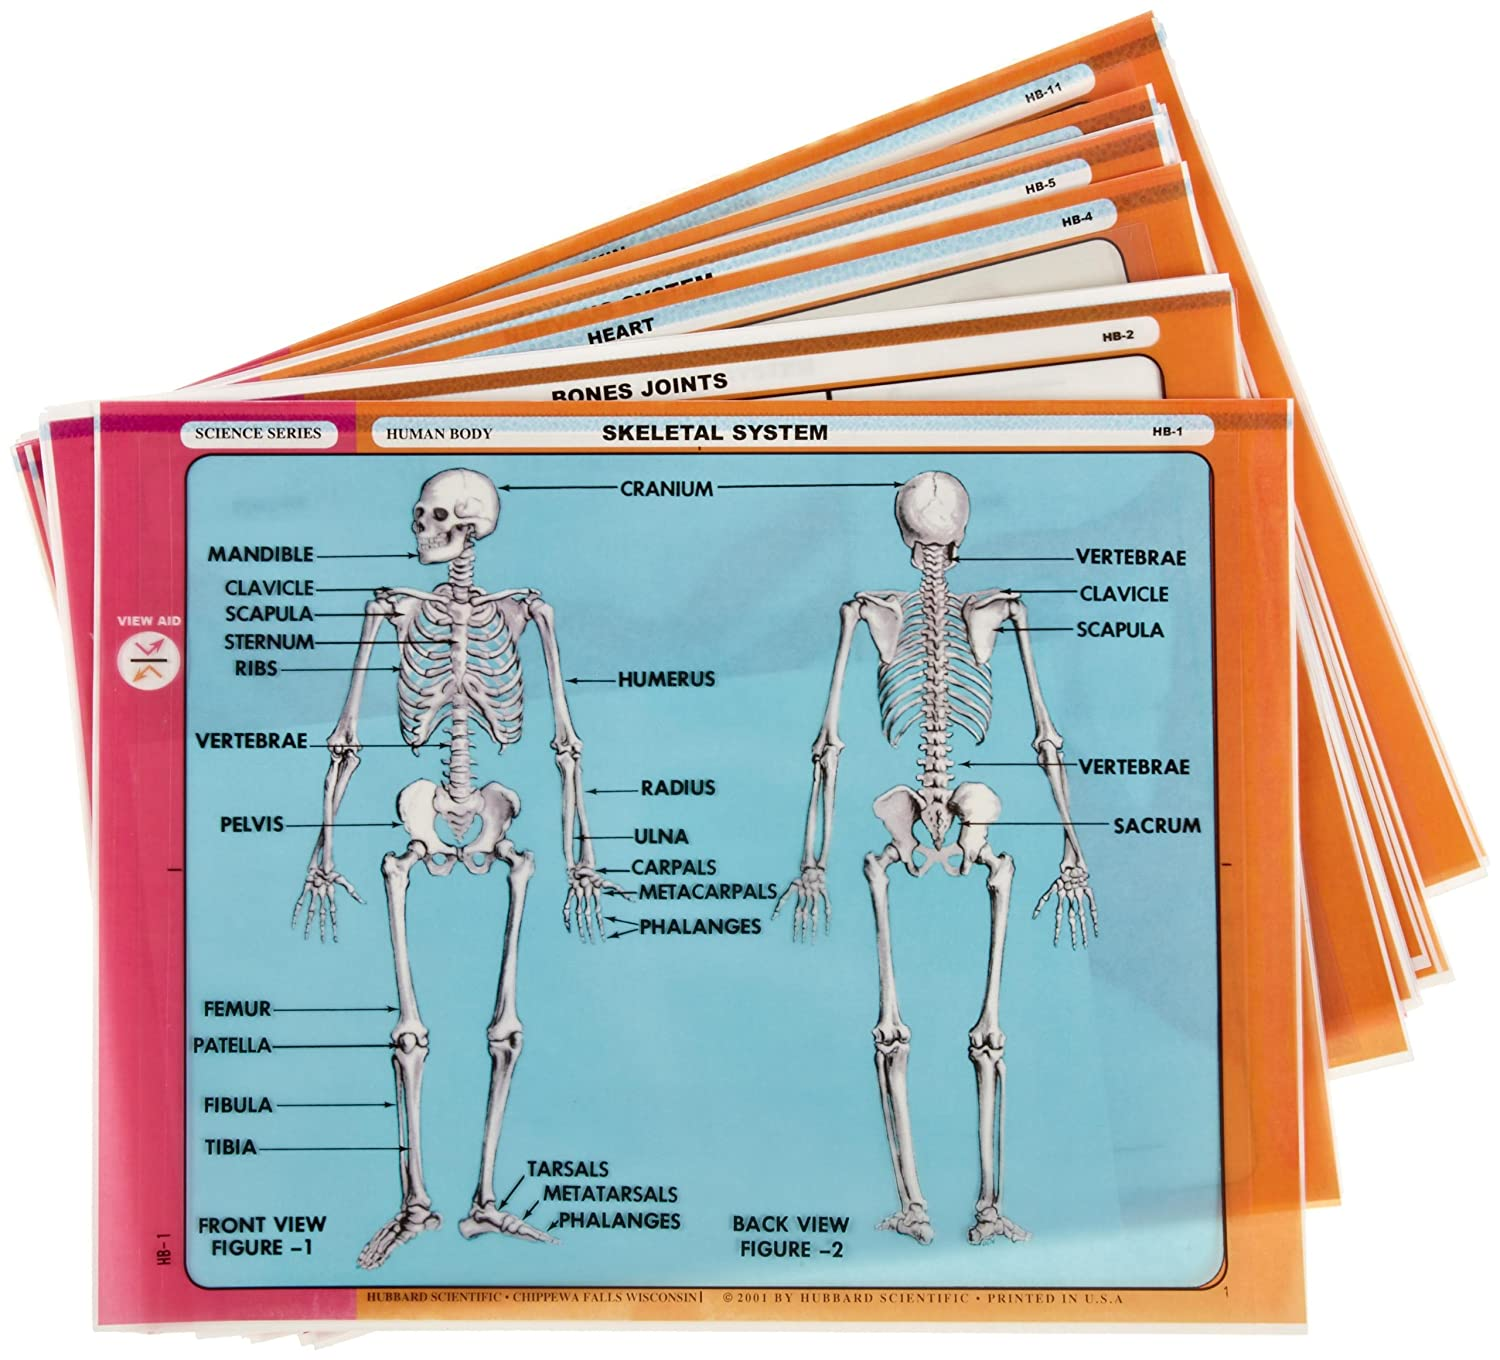 human body systems classroom materials transparencies